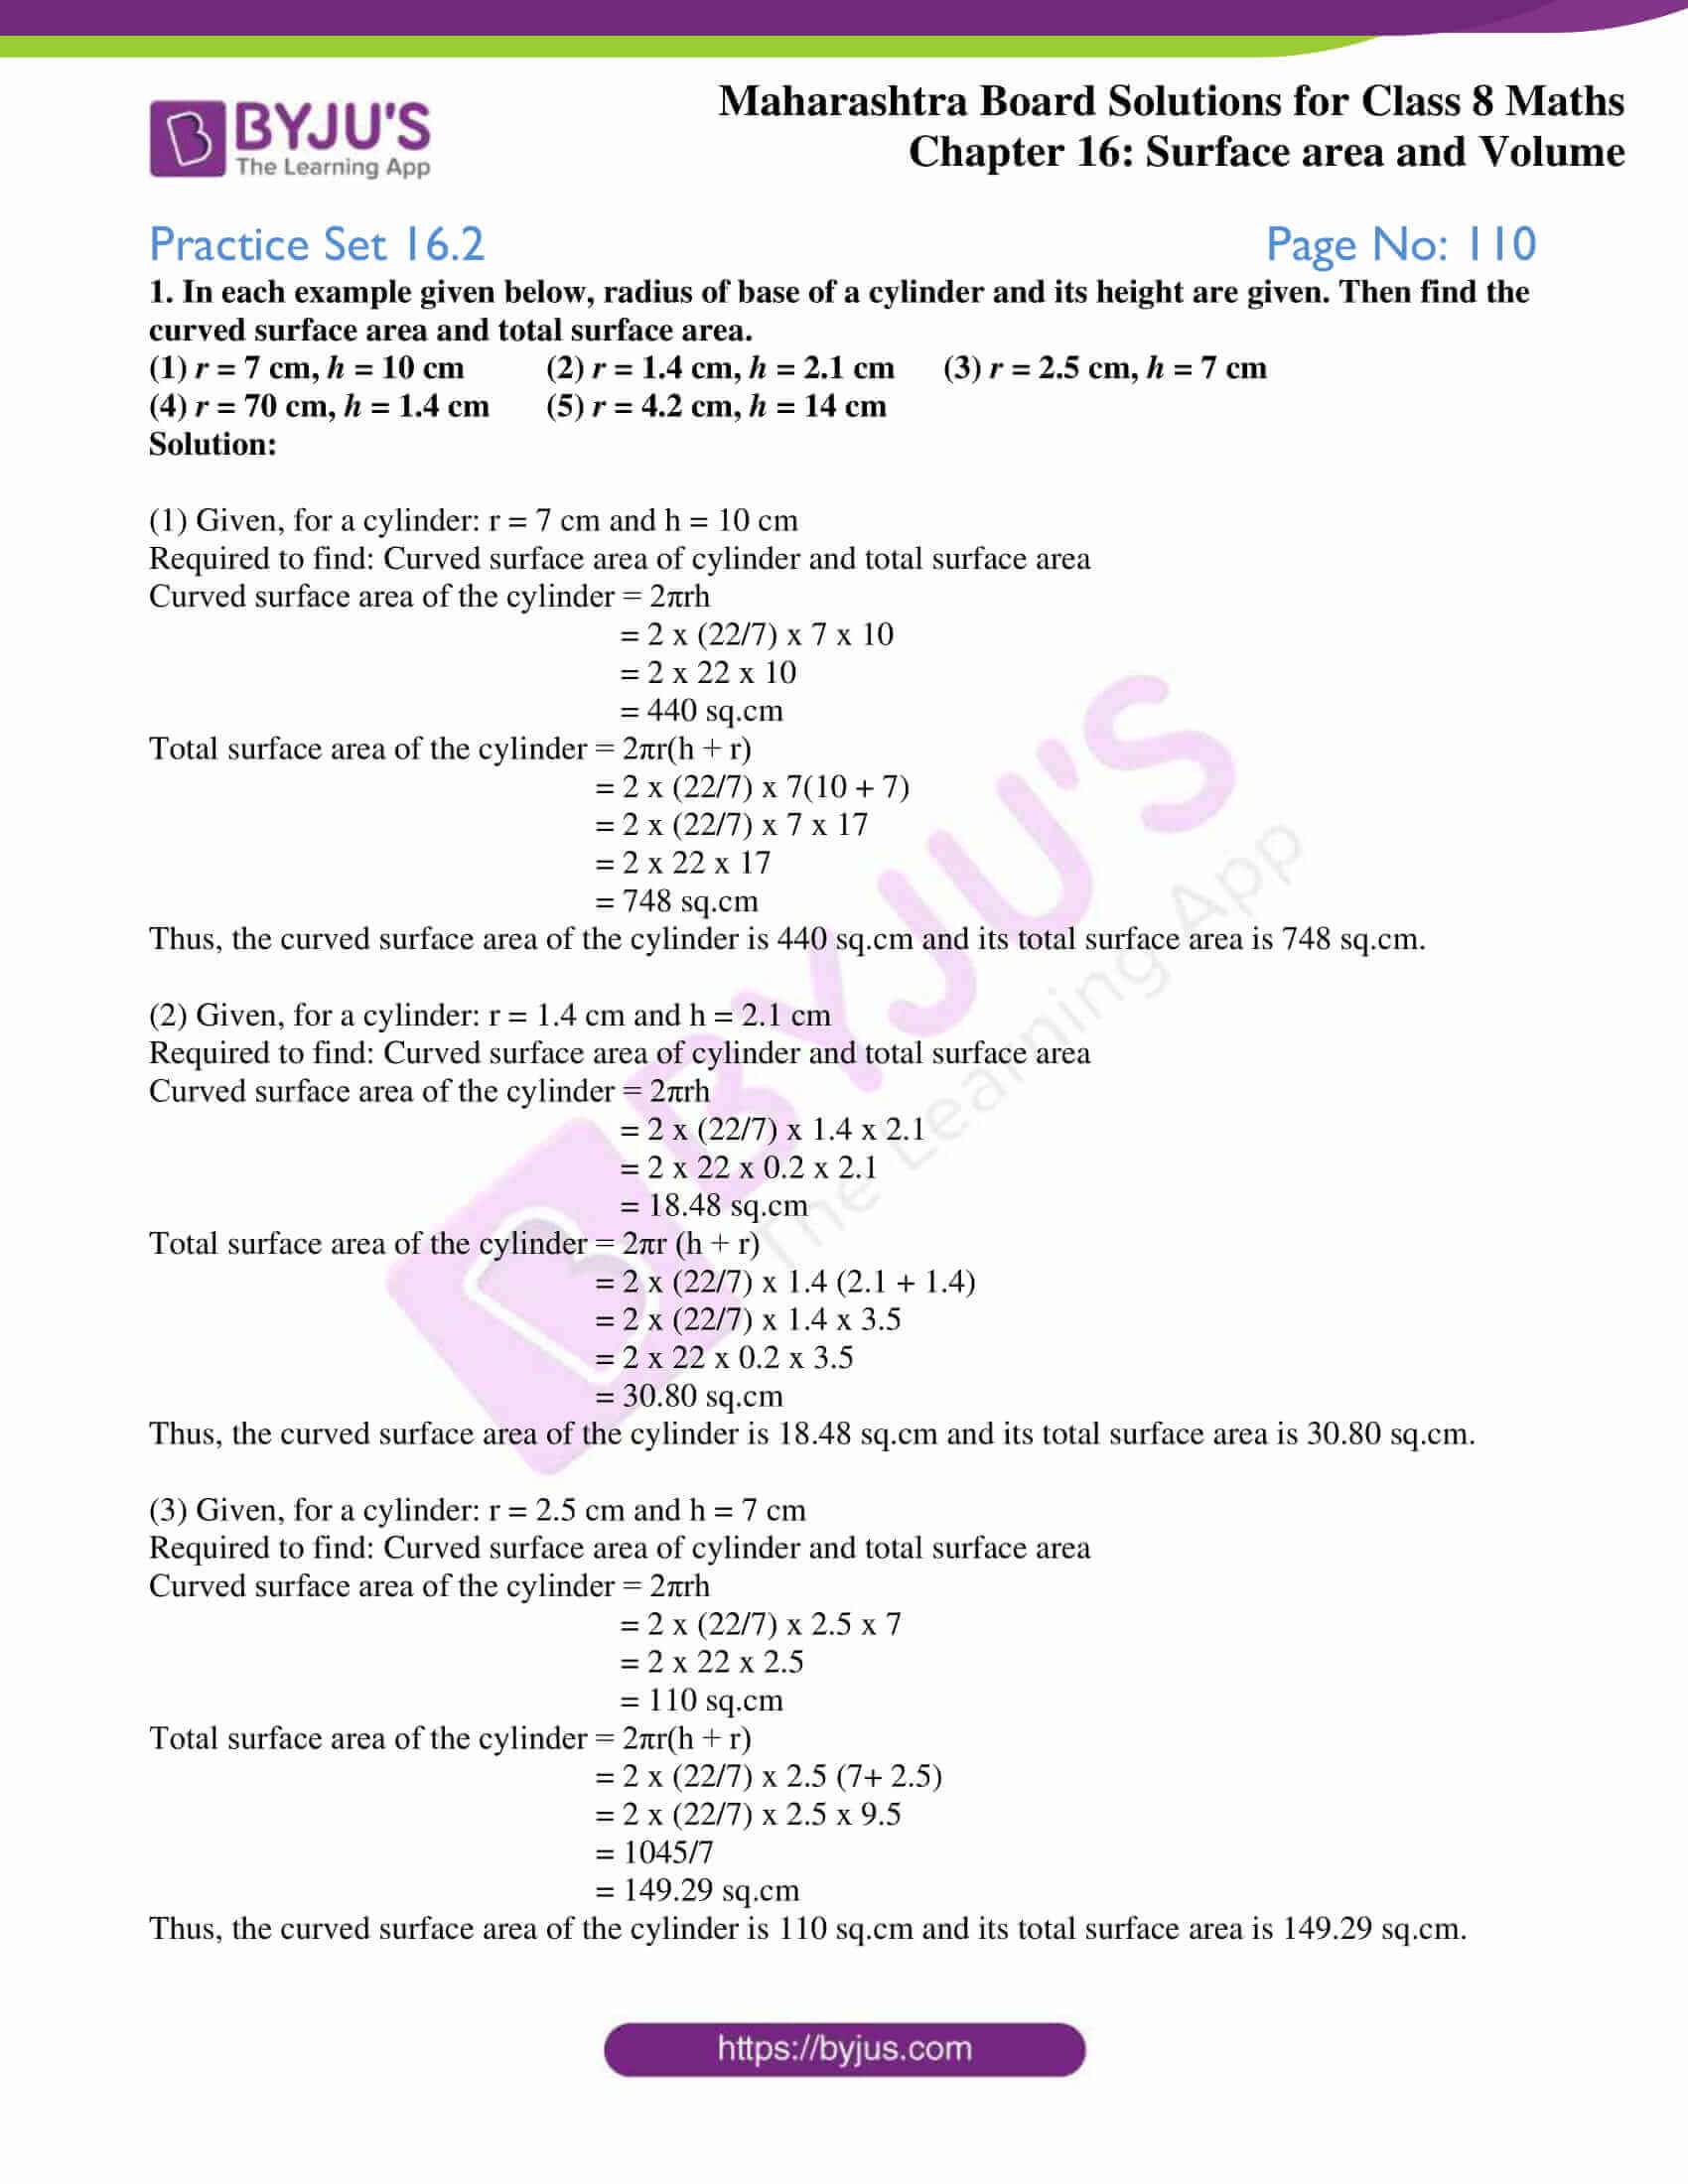 msbshse sol for class 8 maths chapter 16 3